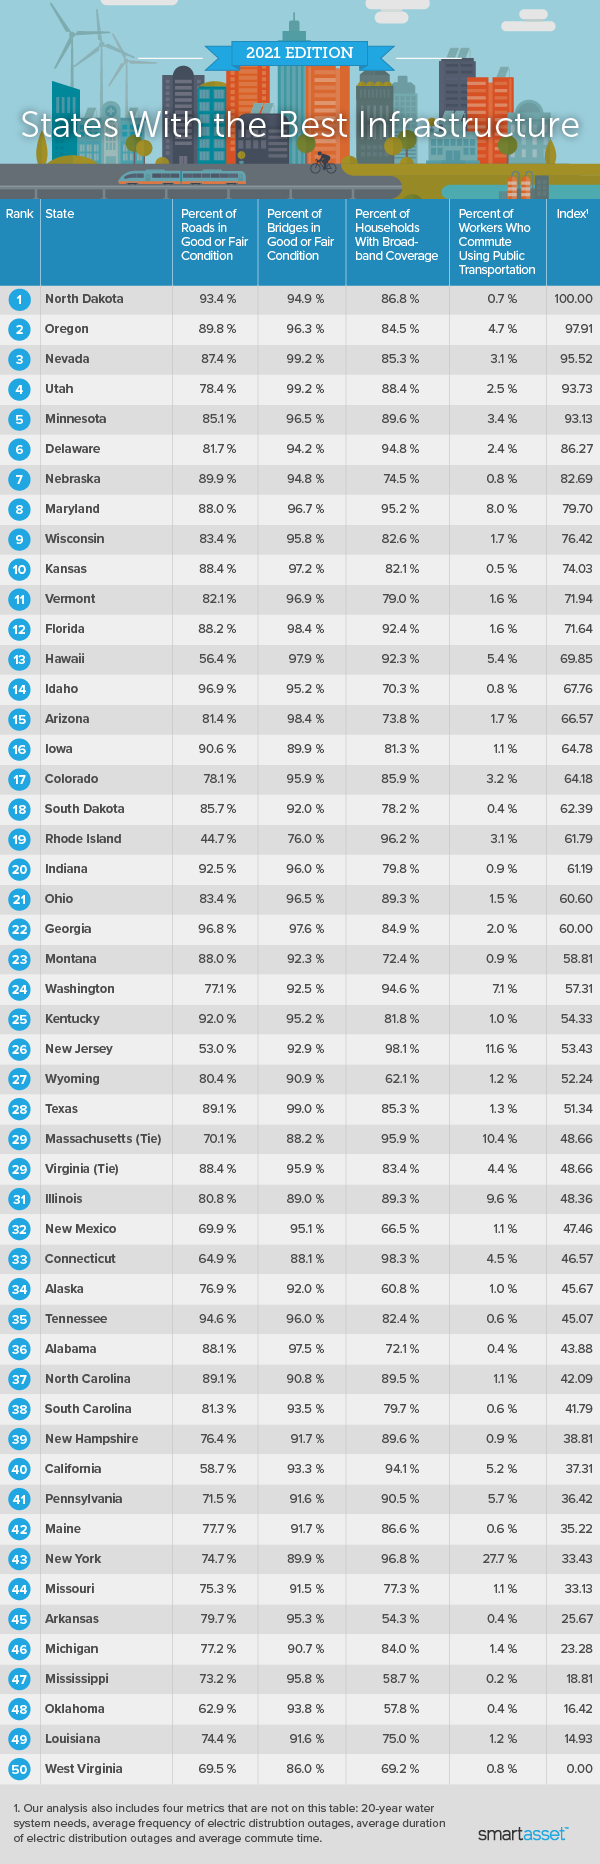 """Image is a table by SmartAsset titled, """"States With the Best Infrastructure: 2021 Edition."""